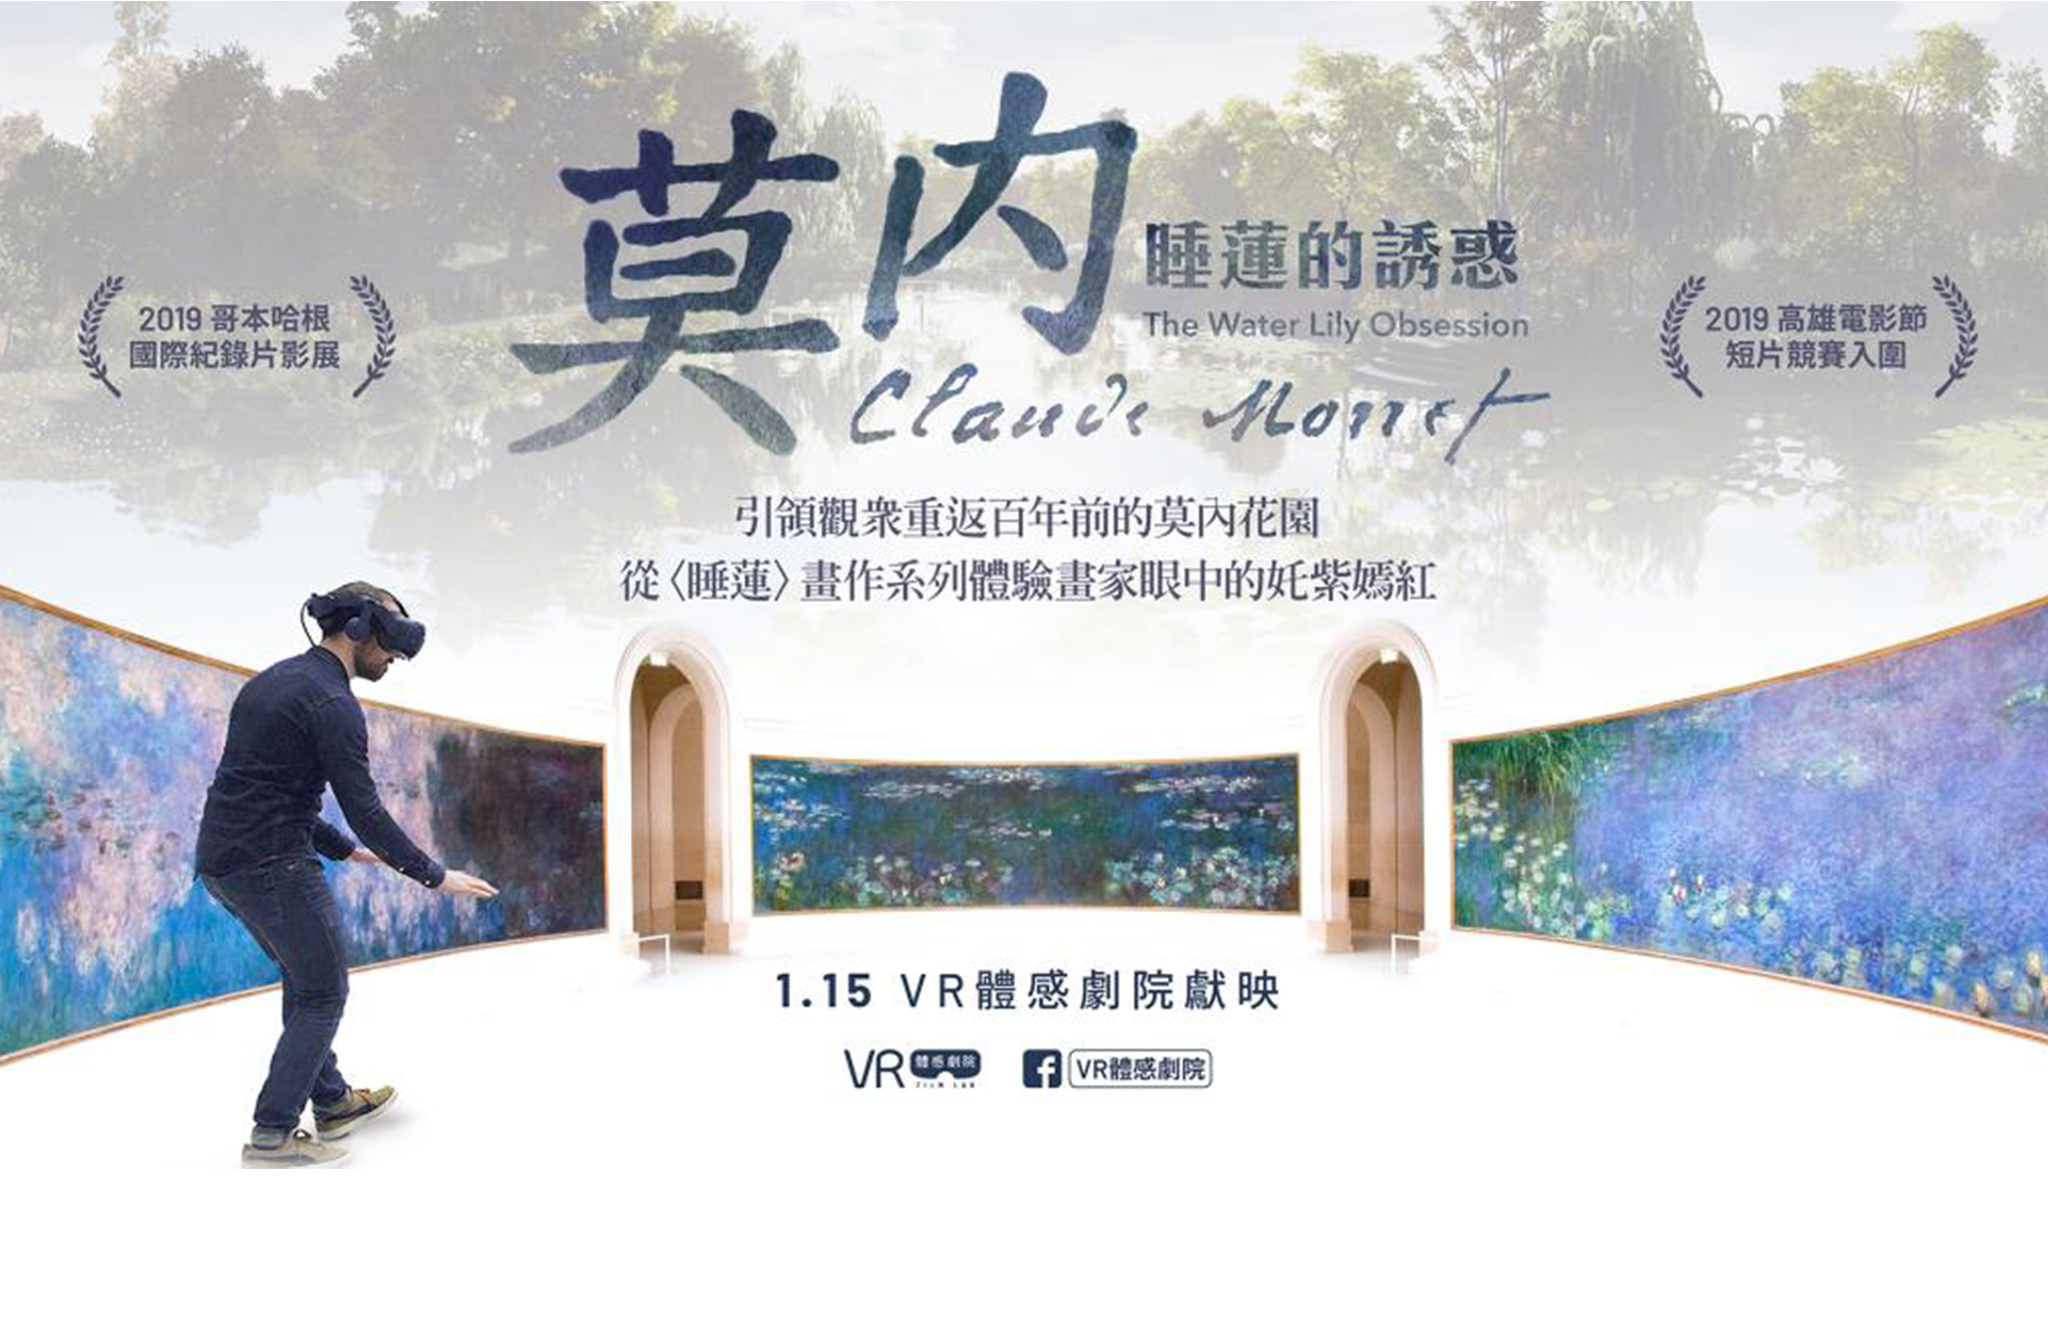 """Claude Monet – The Water Lily obsession"" screened at the Kaohsiung VR FILM LAB"